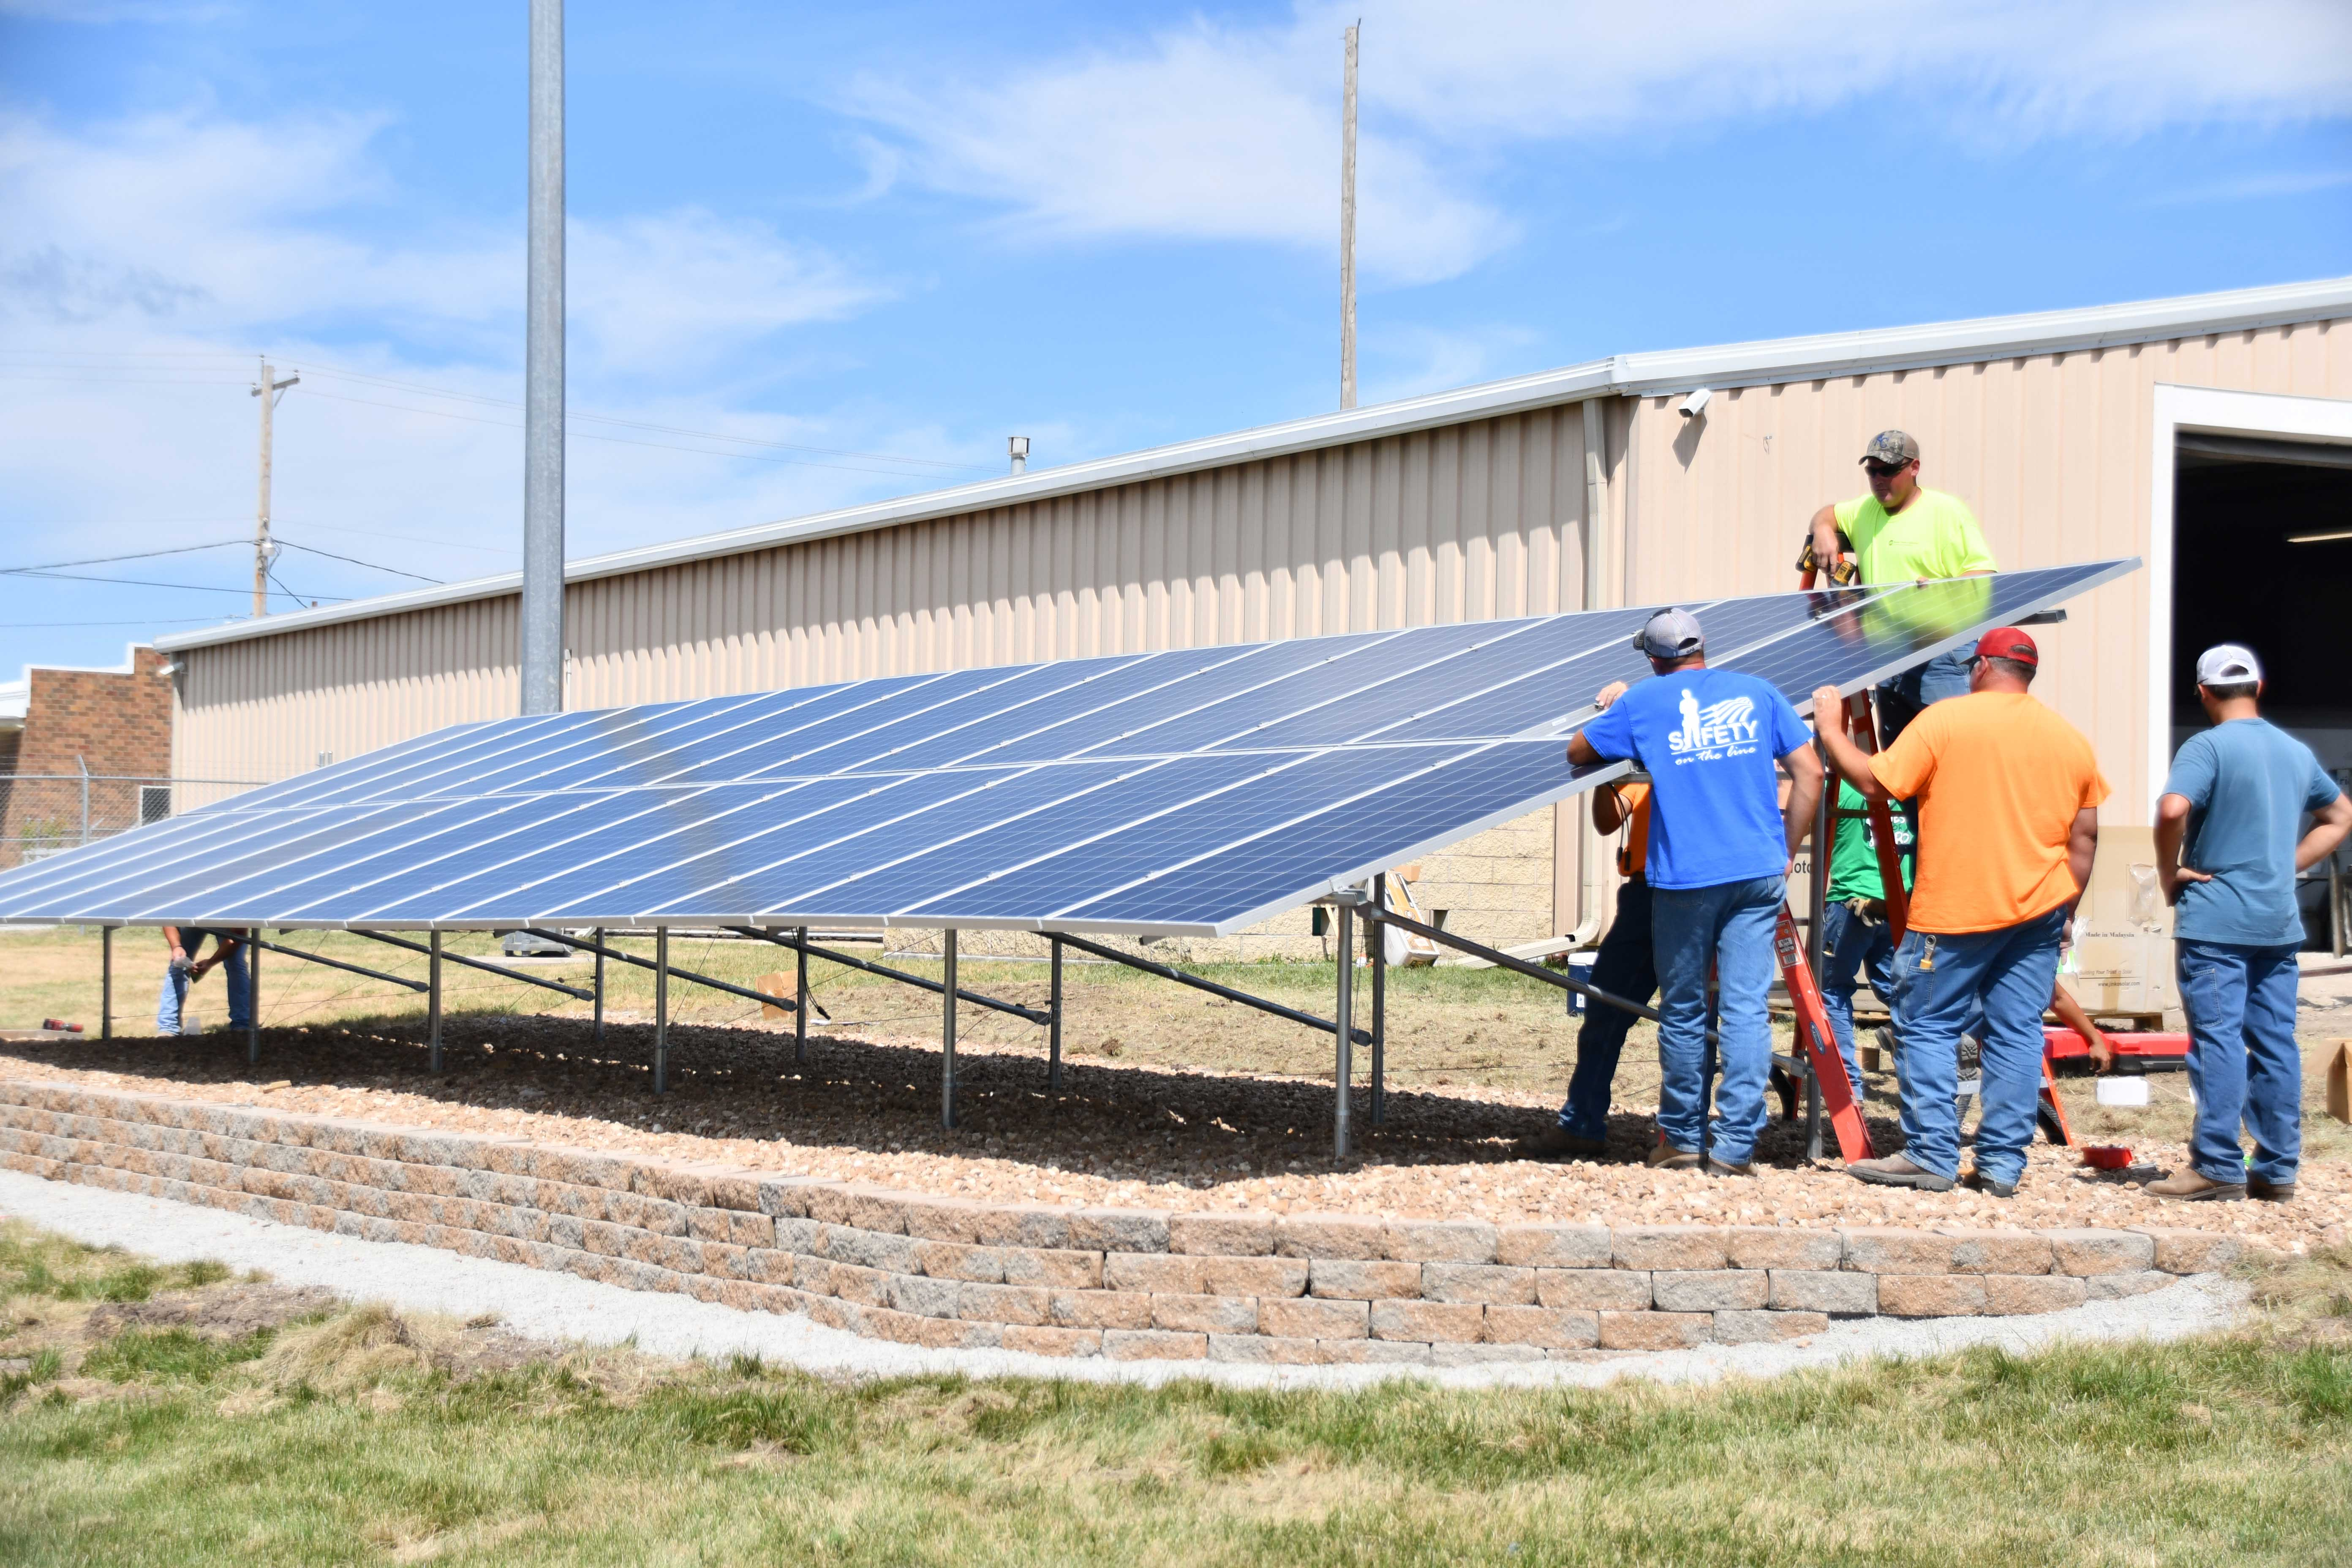 Farmers' Electric's Solar 101 Demonstration array